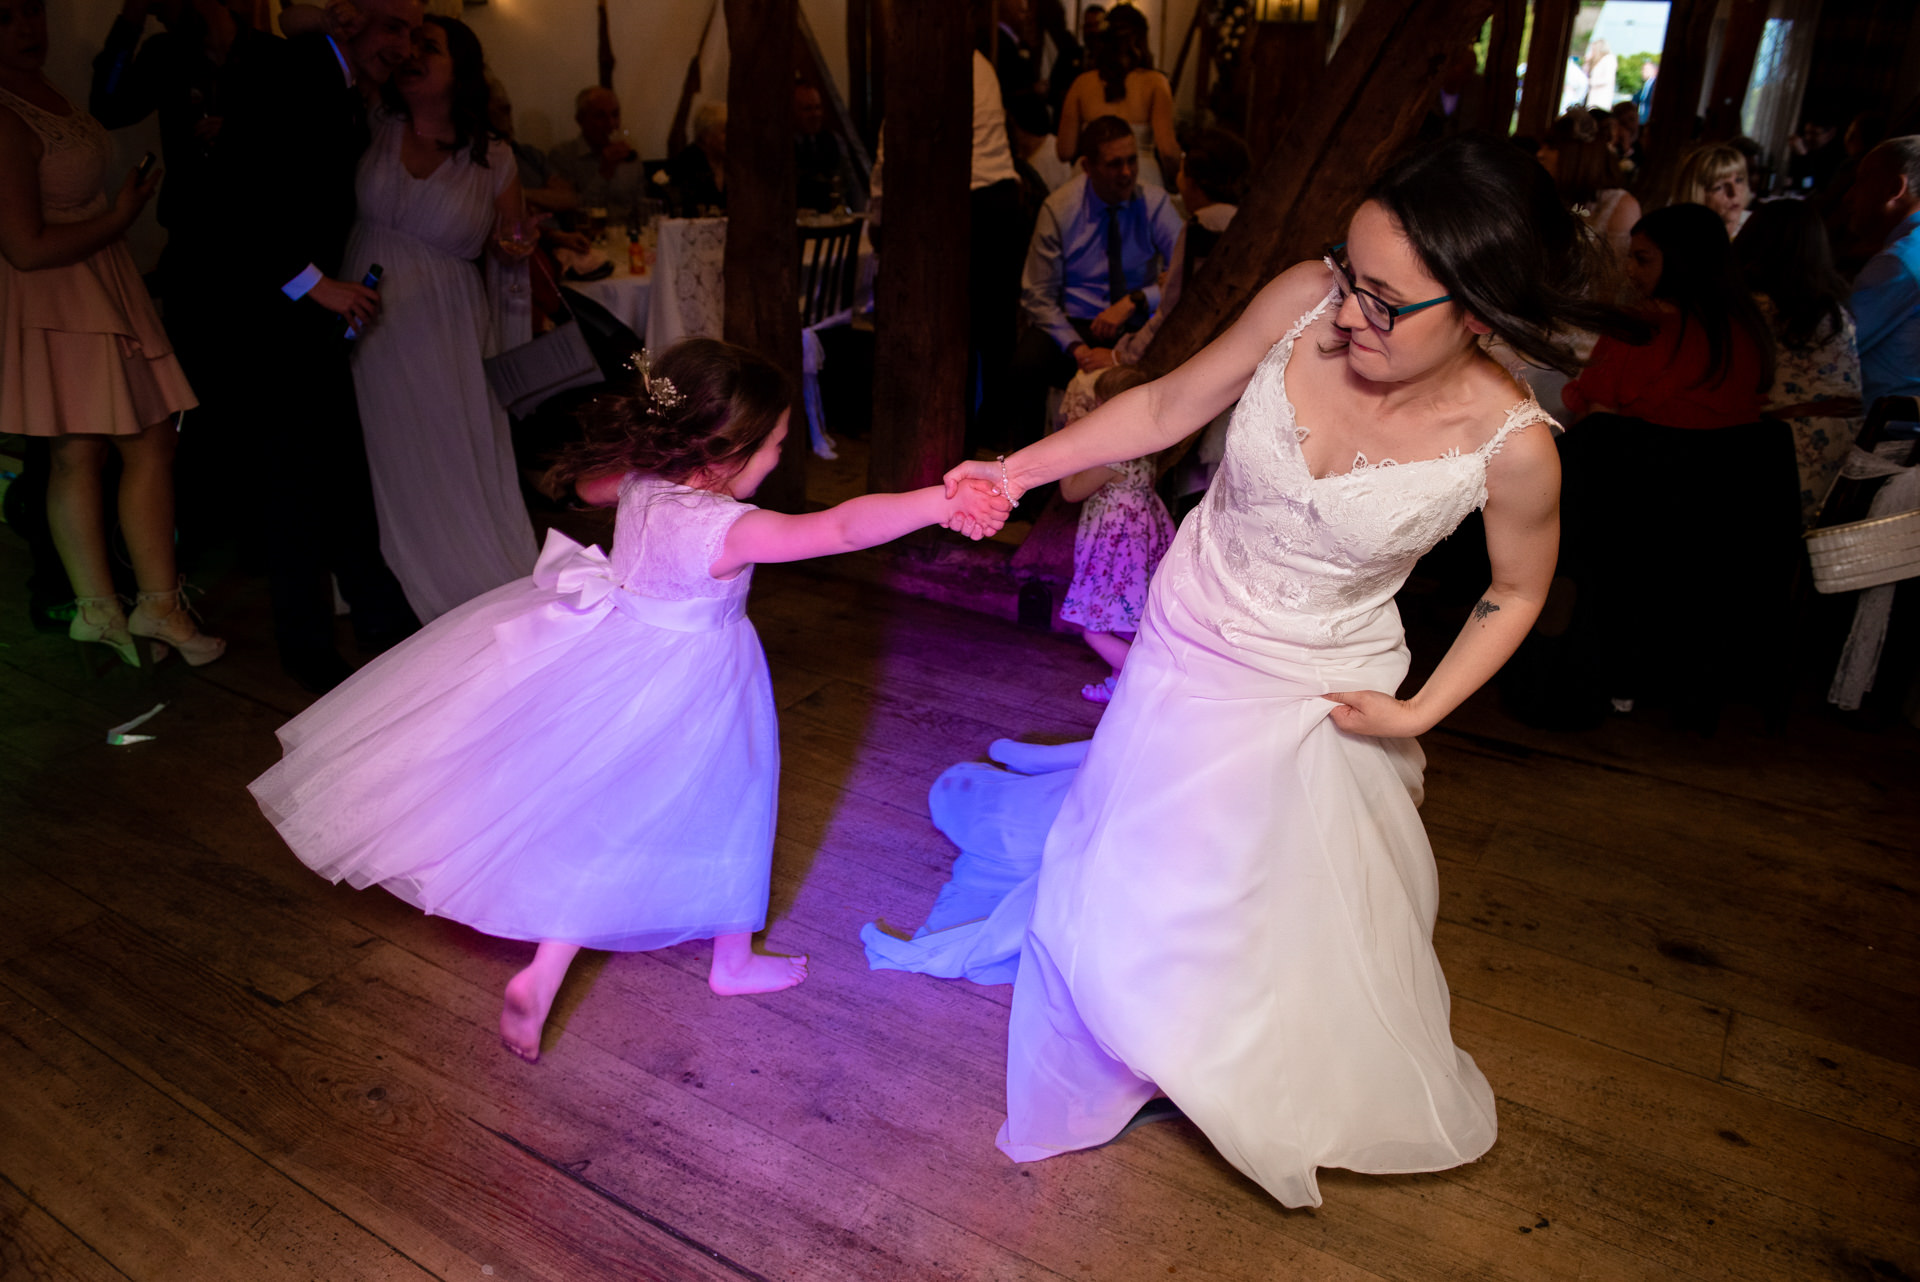 Documentary wedding photographer in cheshire